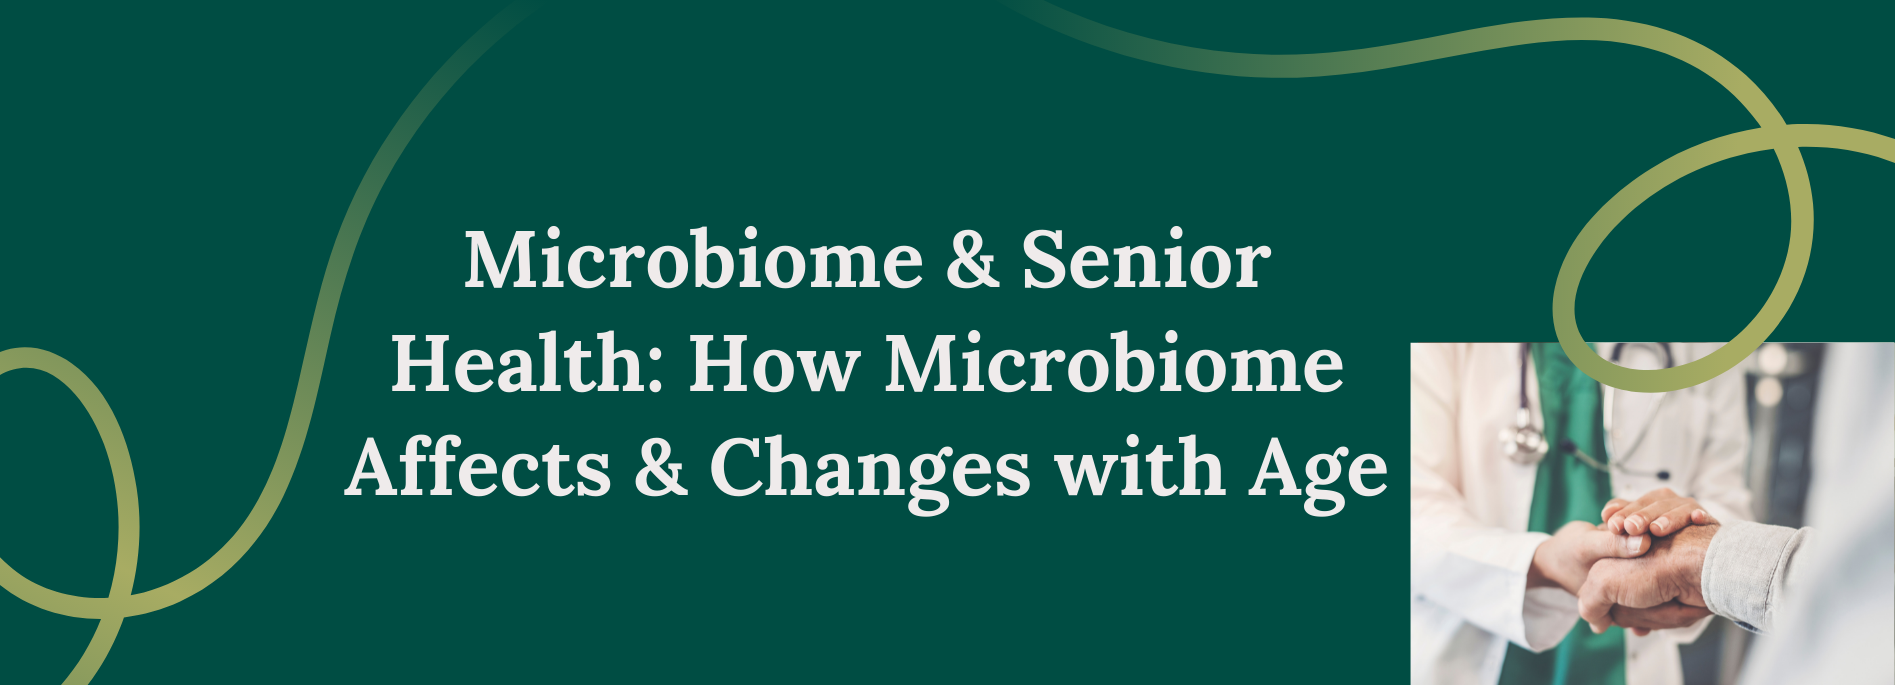 Microbiome & Senior Health: How Microbiome Affects & Changes with Age